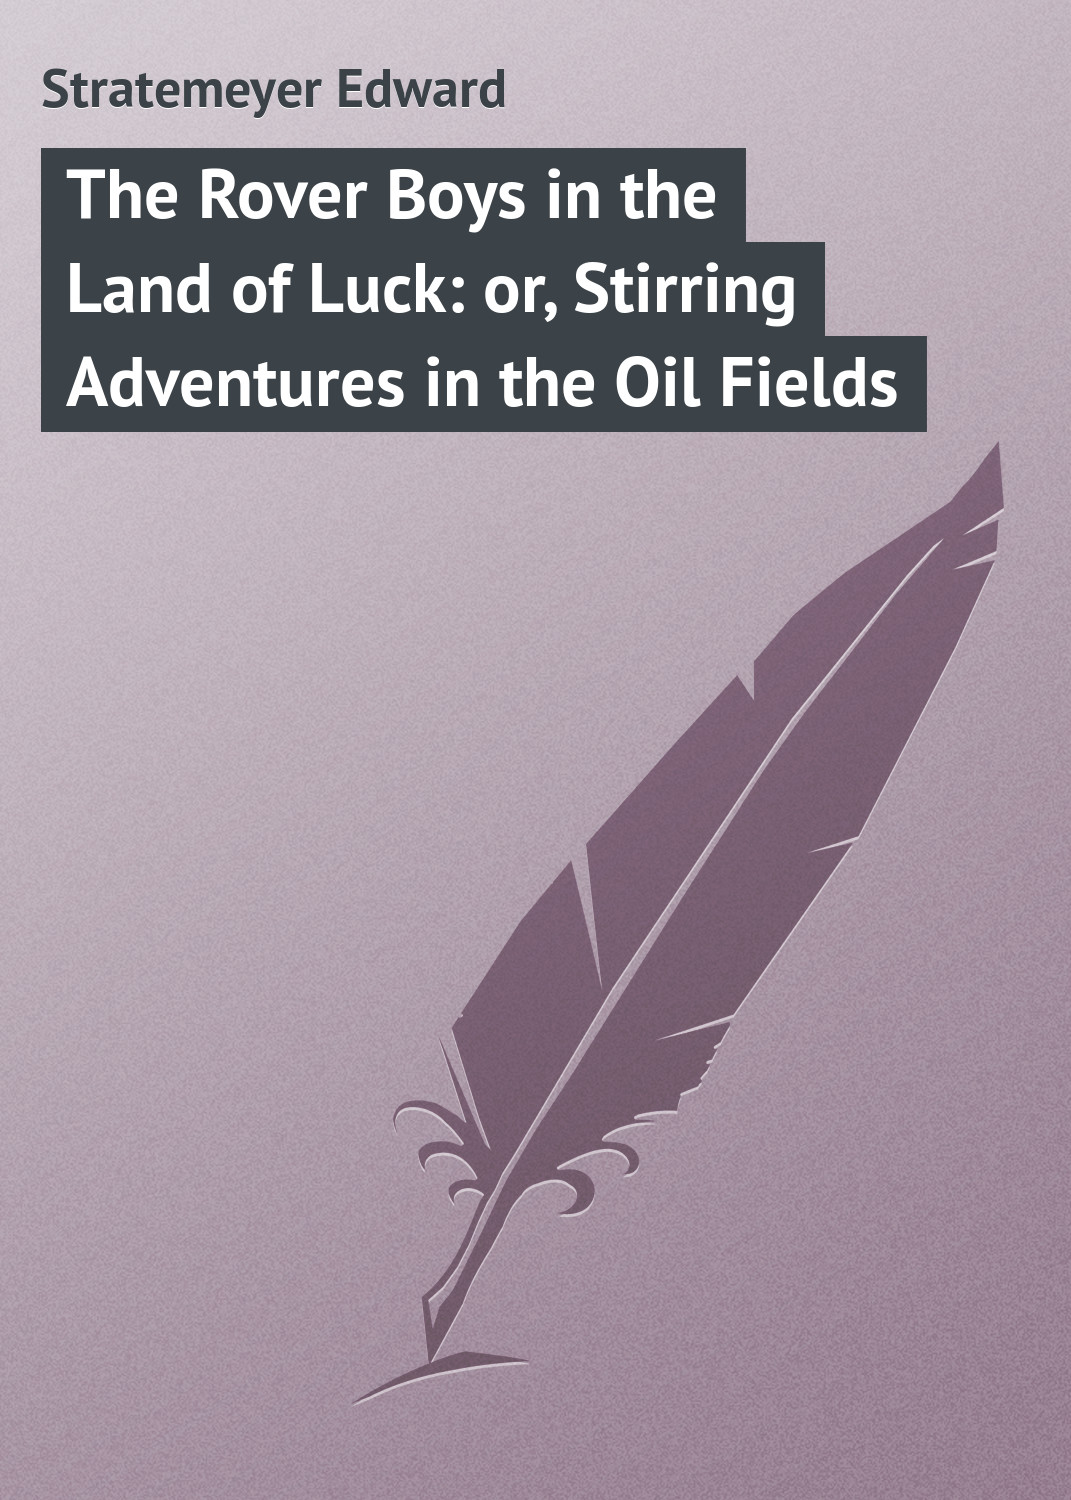 Stratemeyer Edward The Rover Boys in the Land of Luck: or, Stirring Adventures in the Oil Fields